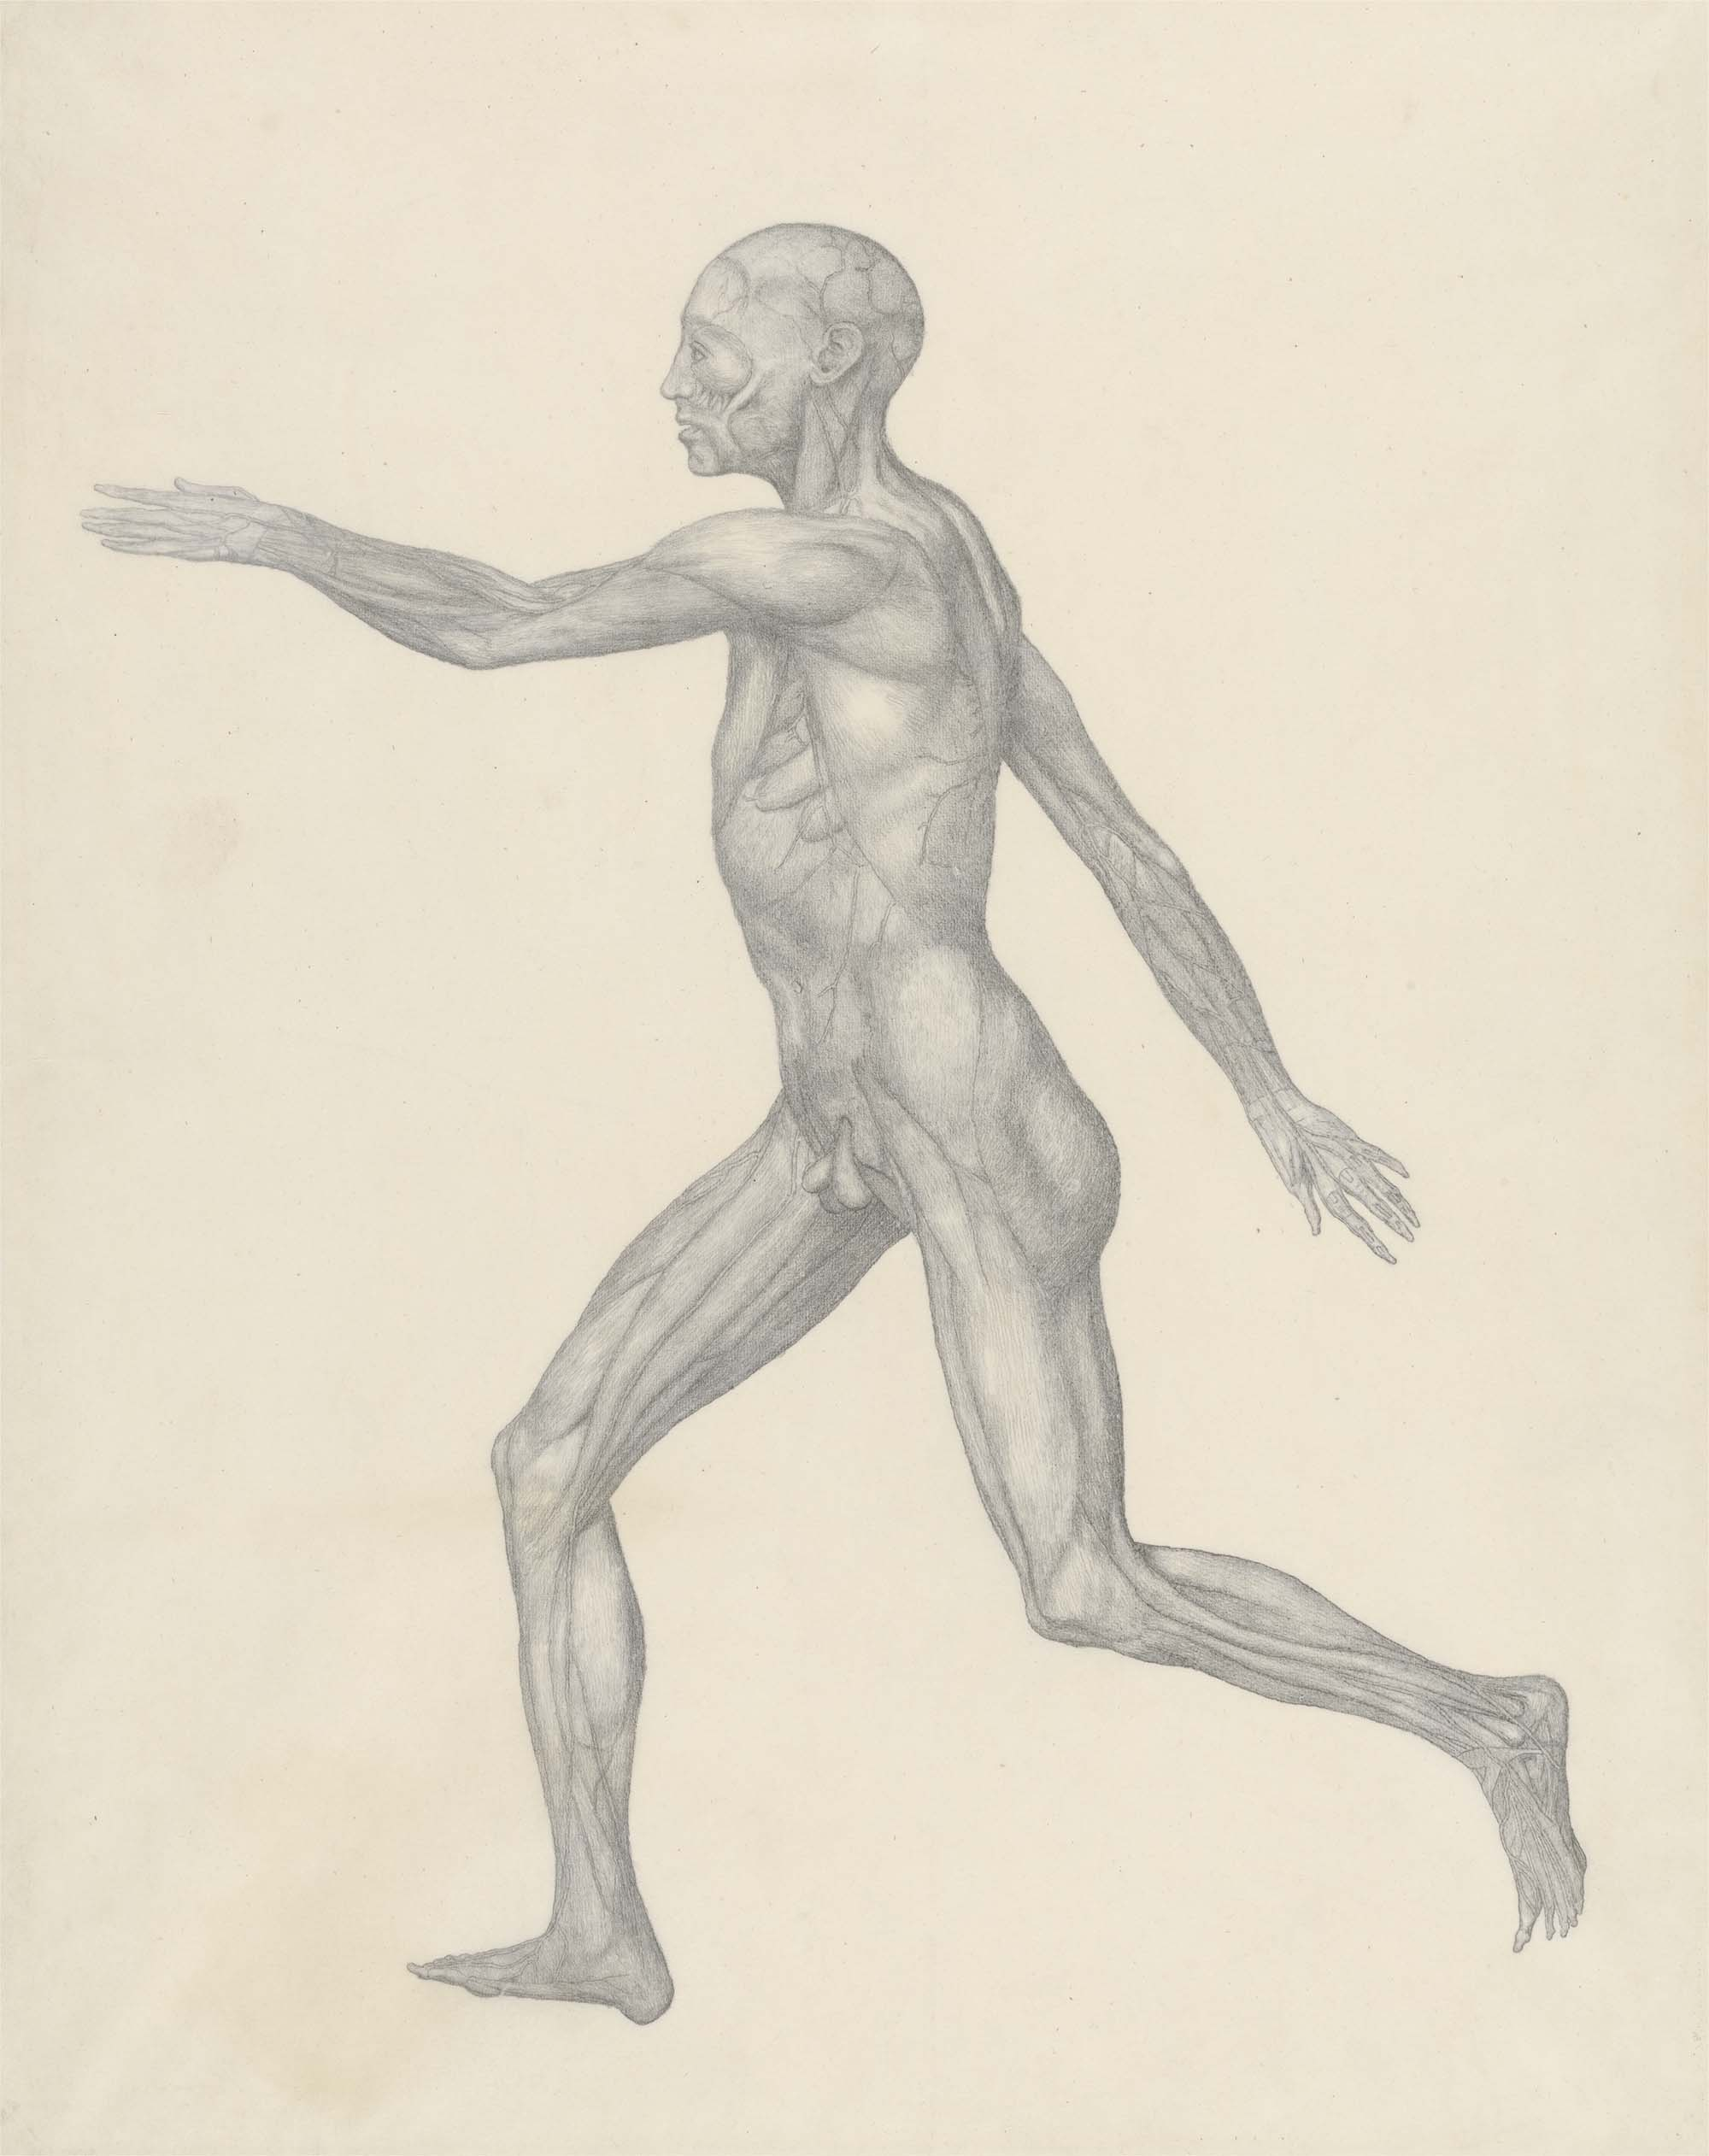 drawn side view of a man in motion showing muscle and sinew